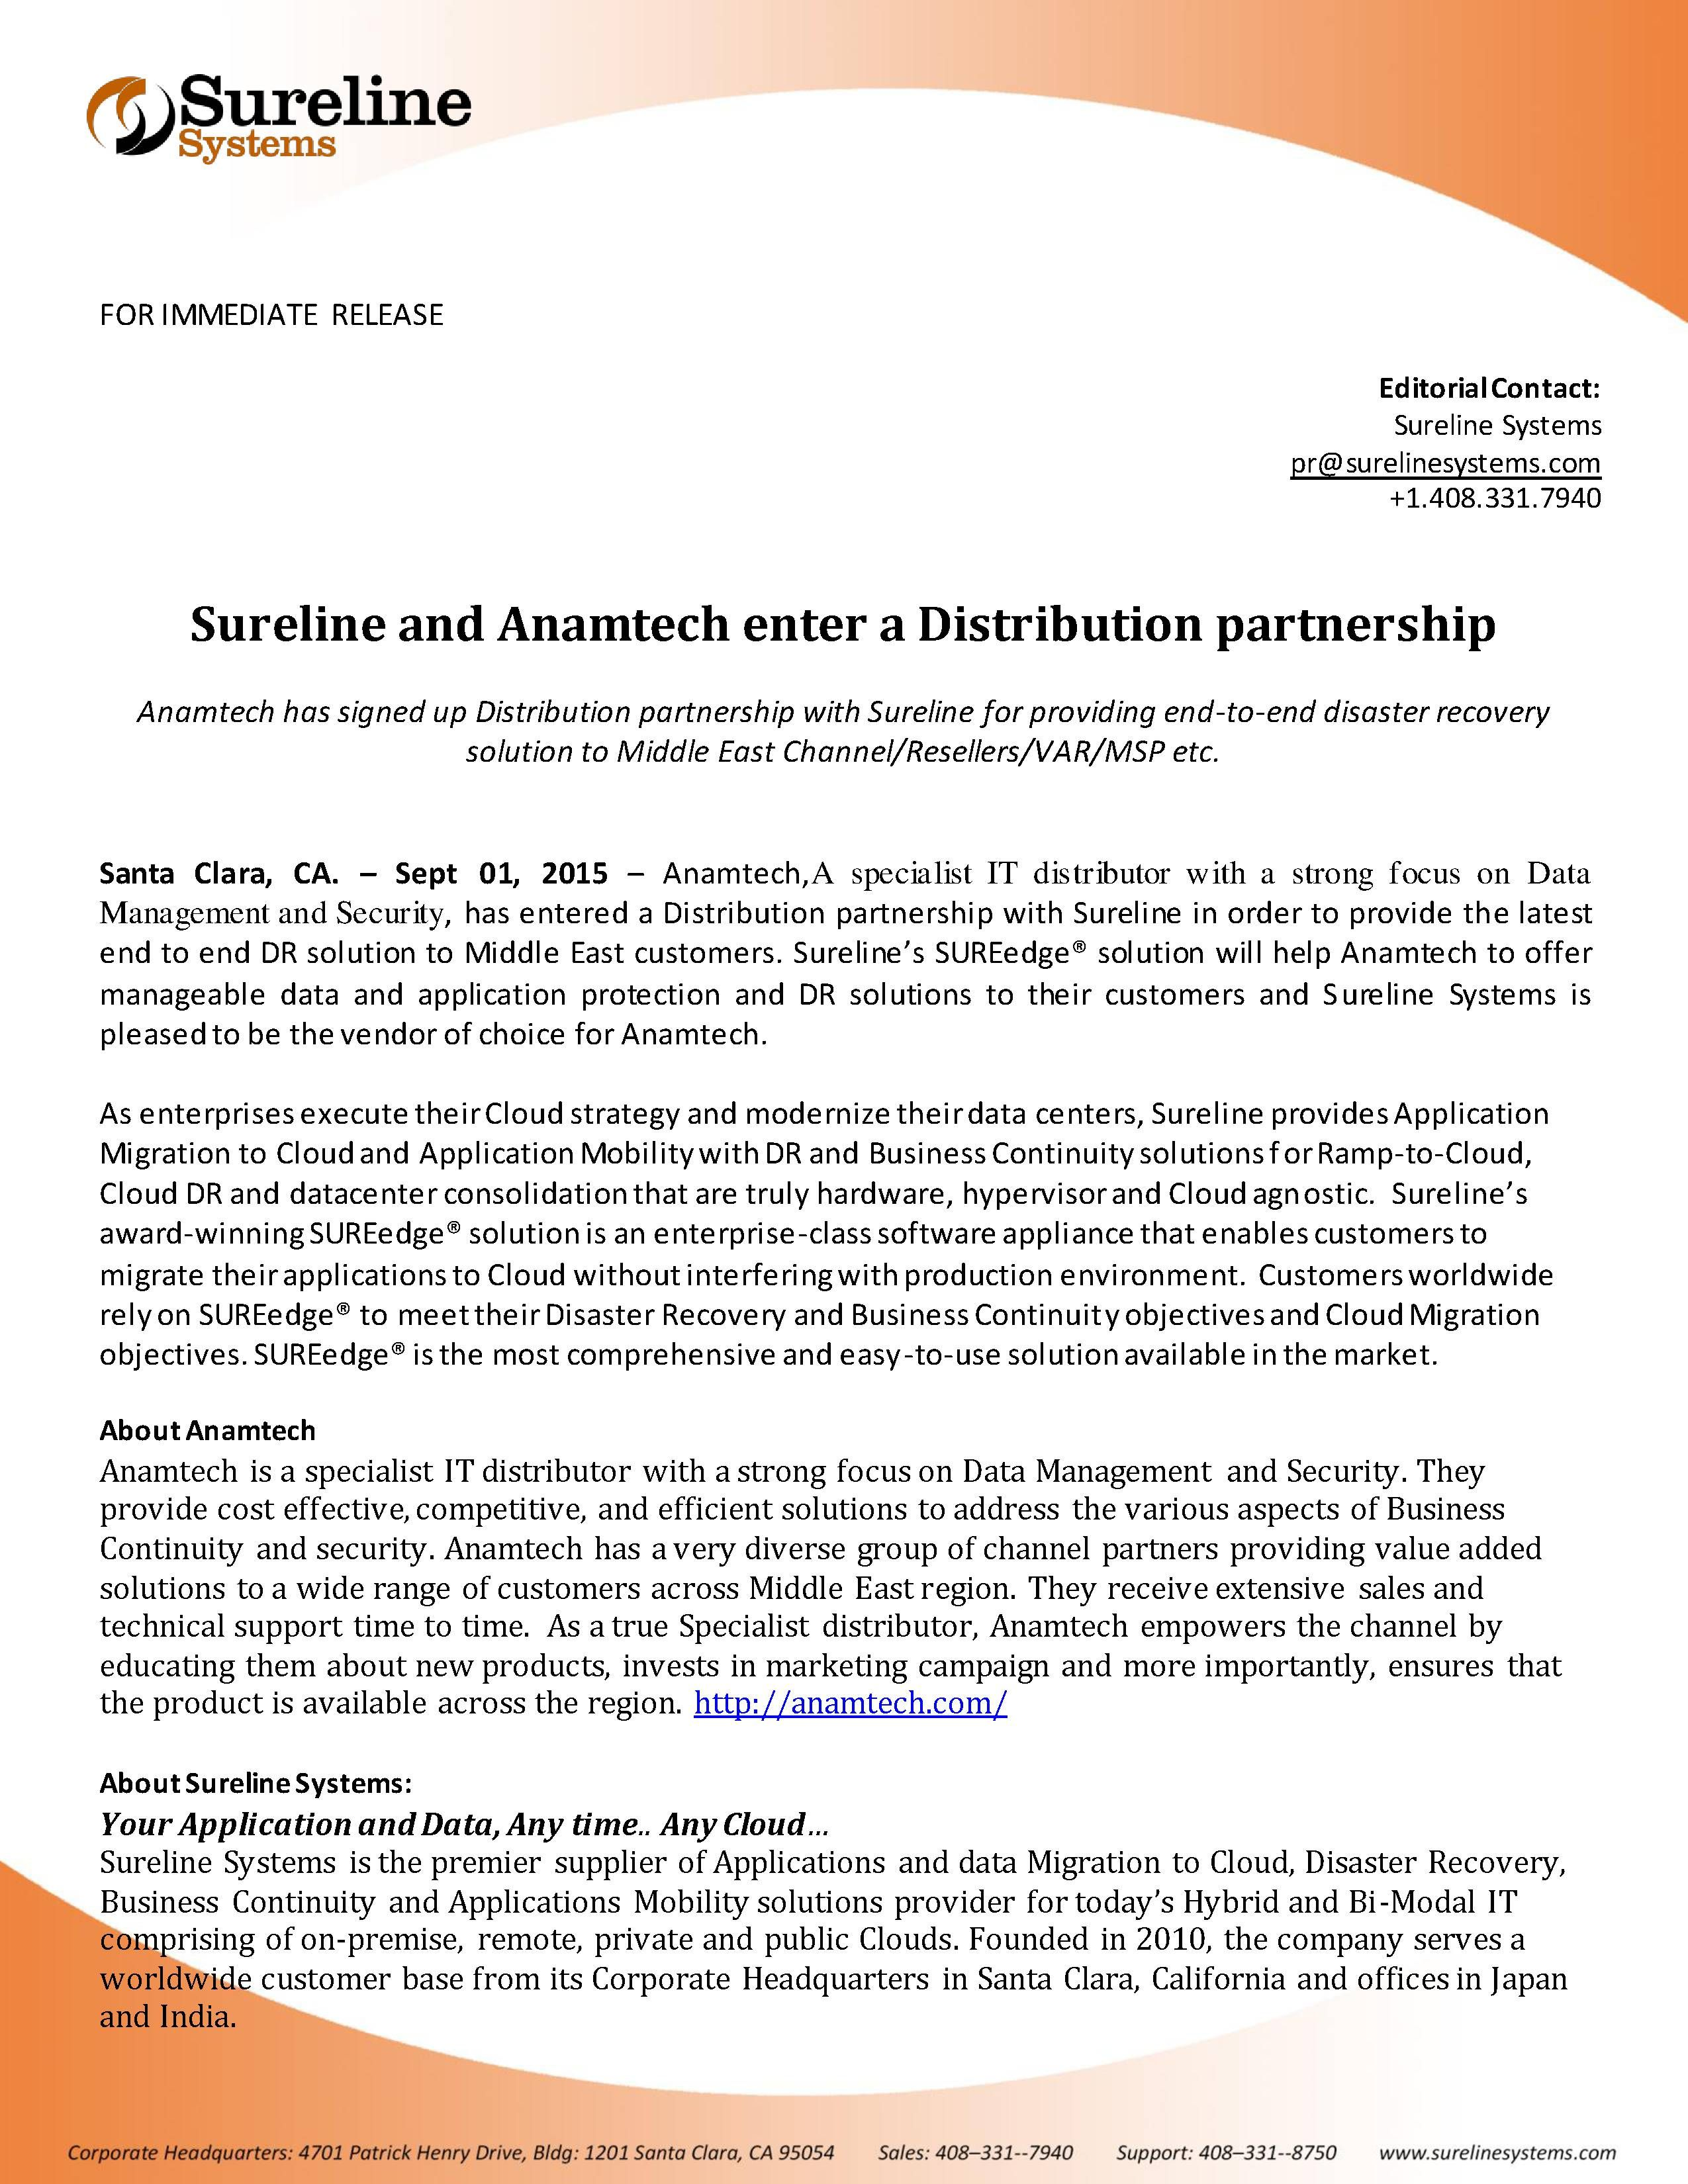 Disaster Recovery Specialist Sureline And Anamtech Enter A Distribution Partnership Anamtech